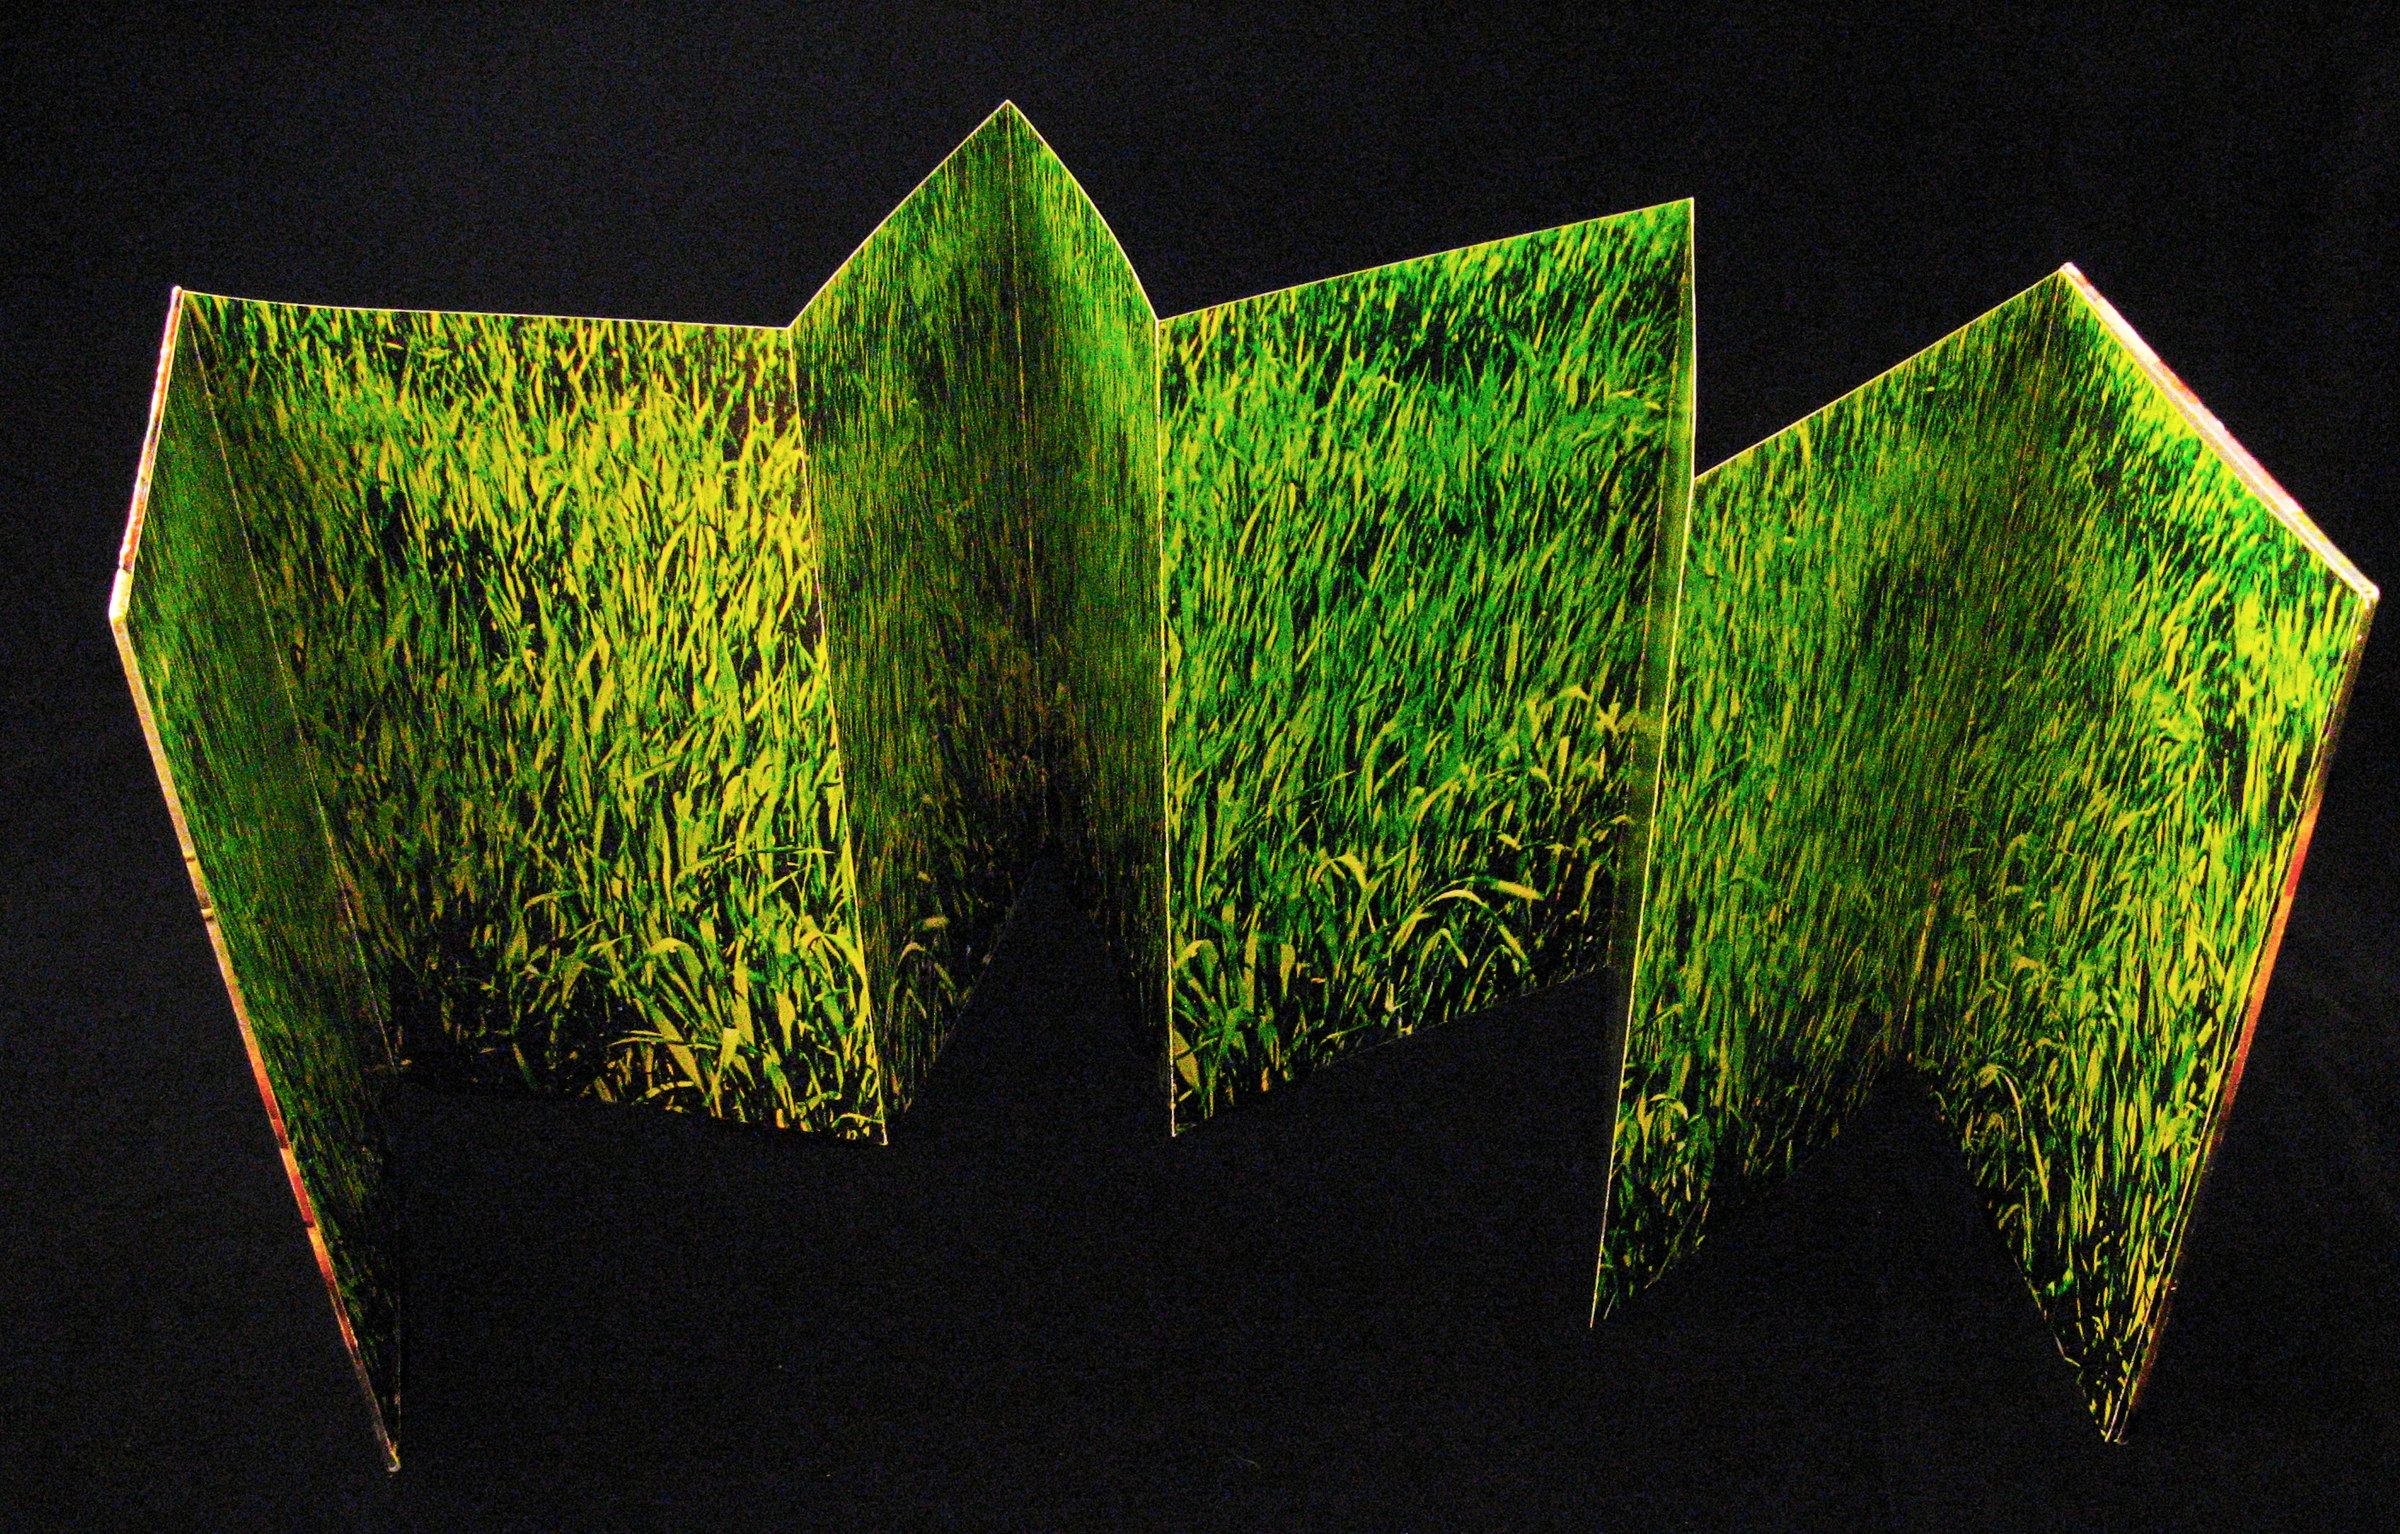 An accordion fold artist's book featuring a photo of grass.